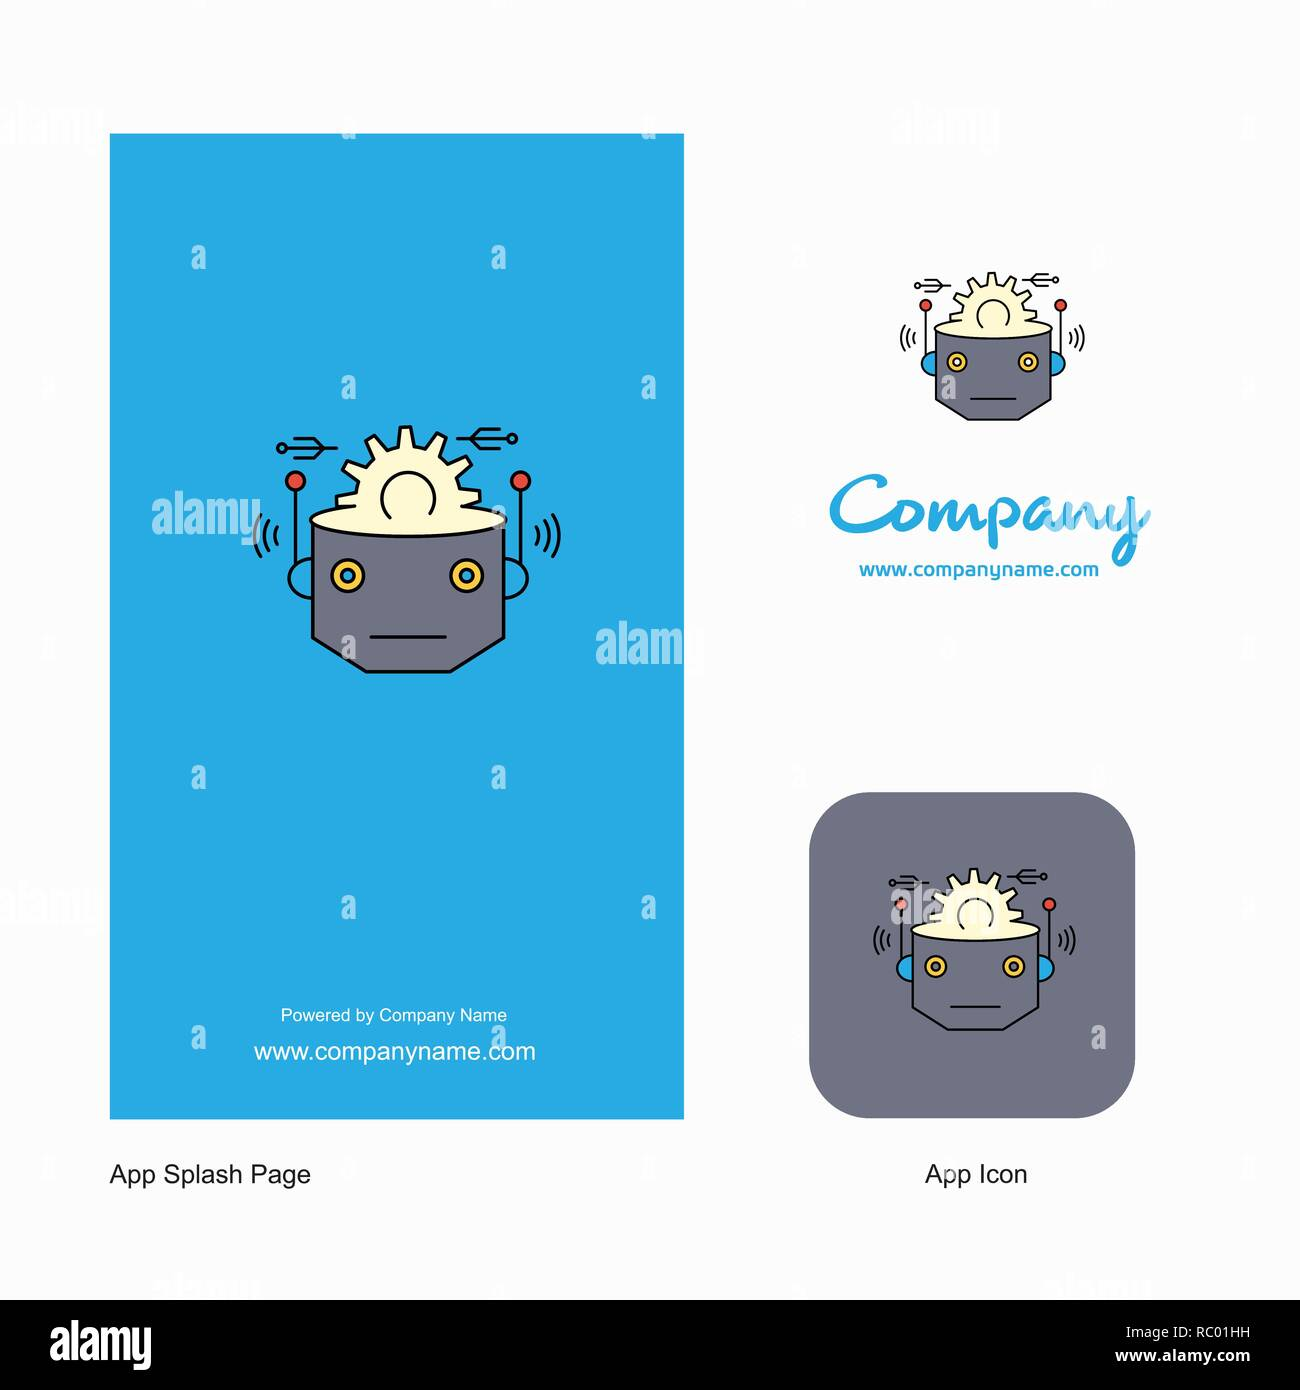 Robot Company Logo App Icon and Splash Page Design  Creative